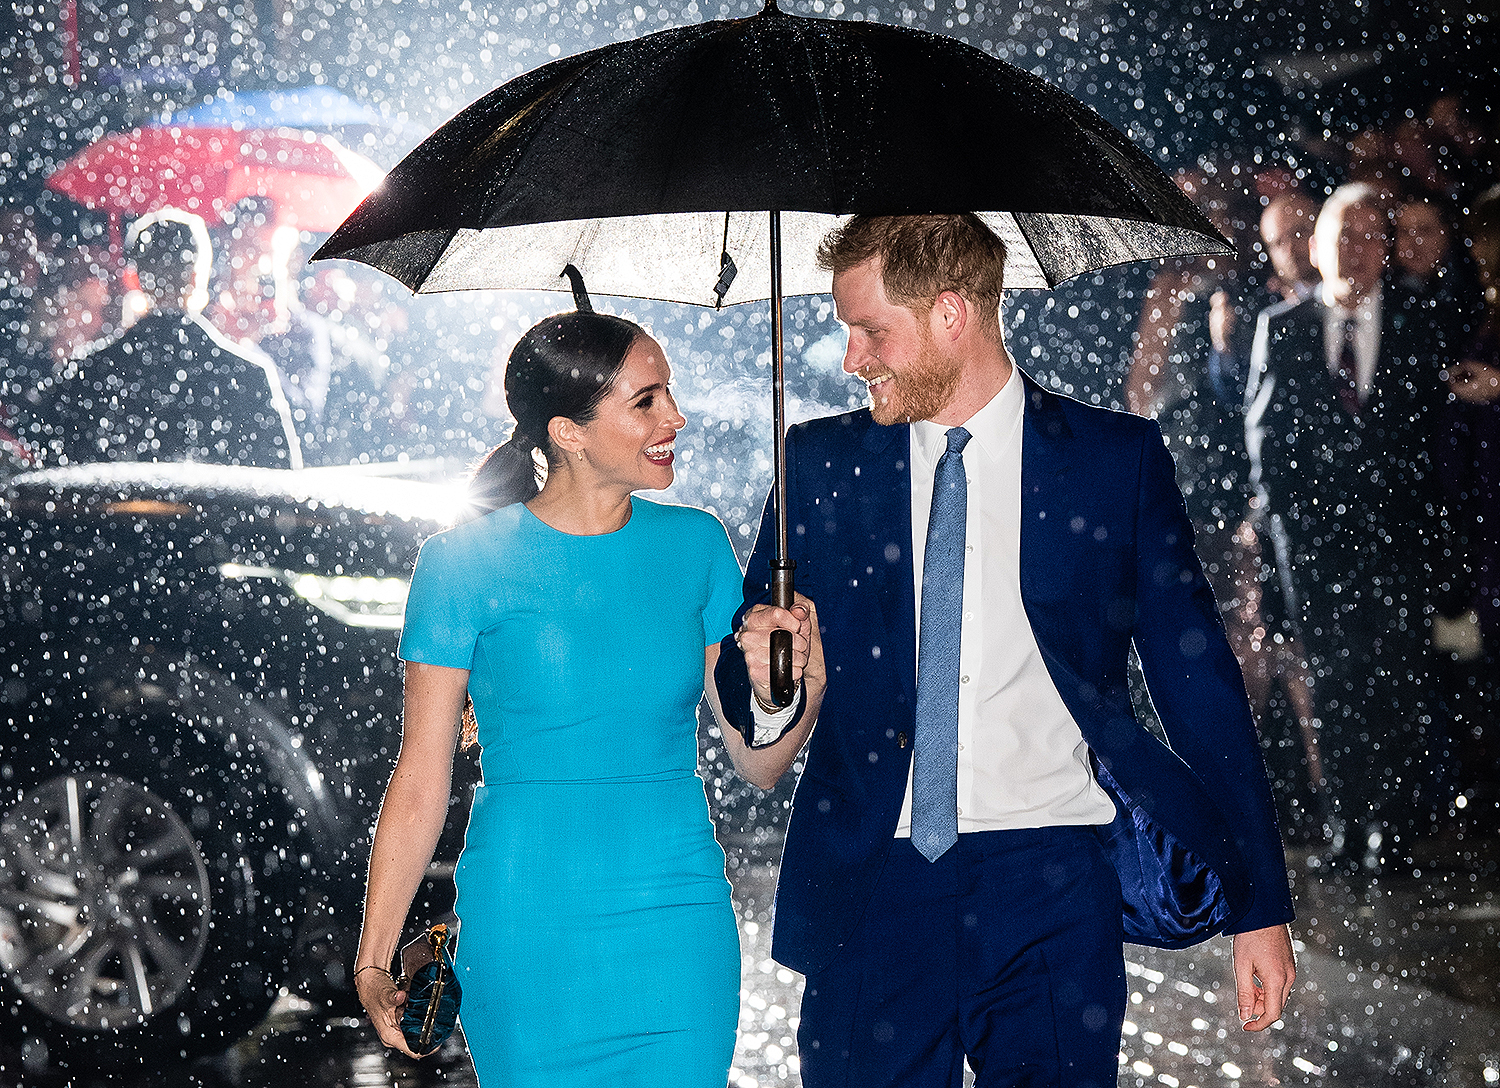 Meghan Markle and Prince Harry's last royal appearance at the annual Endeavour Fund Awards in London, 2020